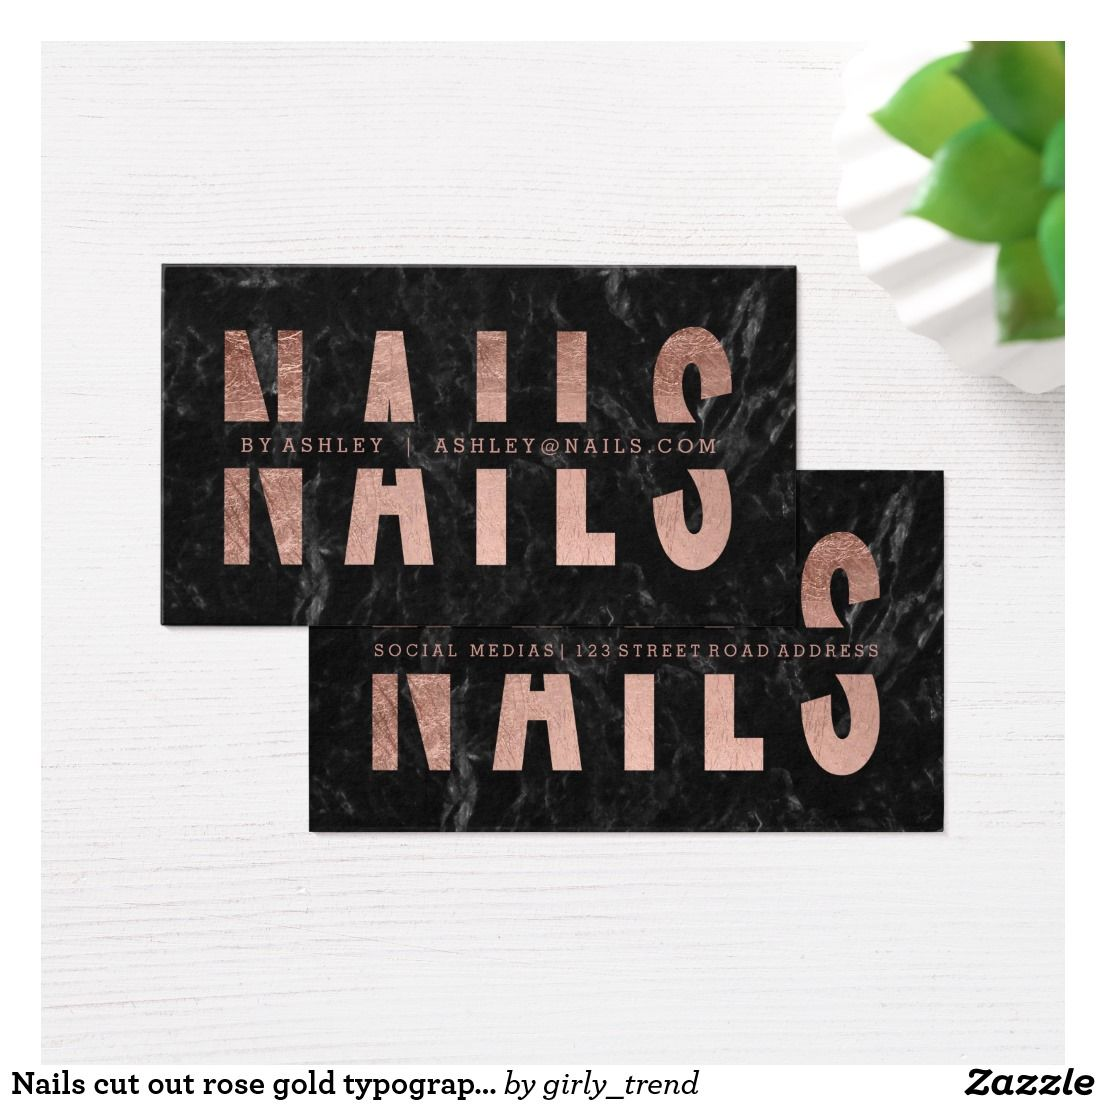 Nails cut out rose gold typography black marble business card ...